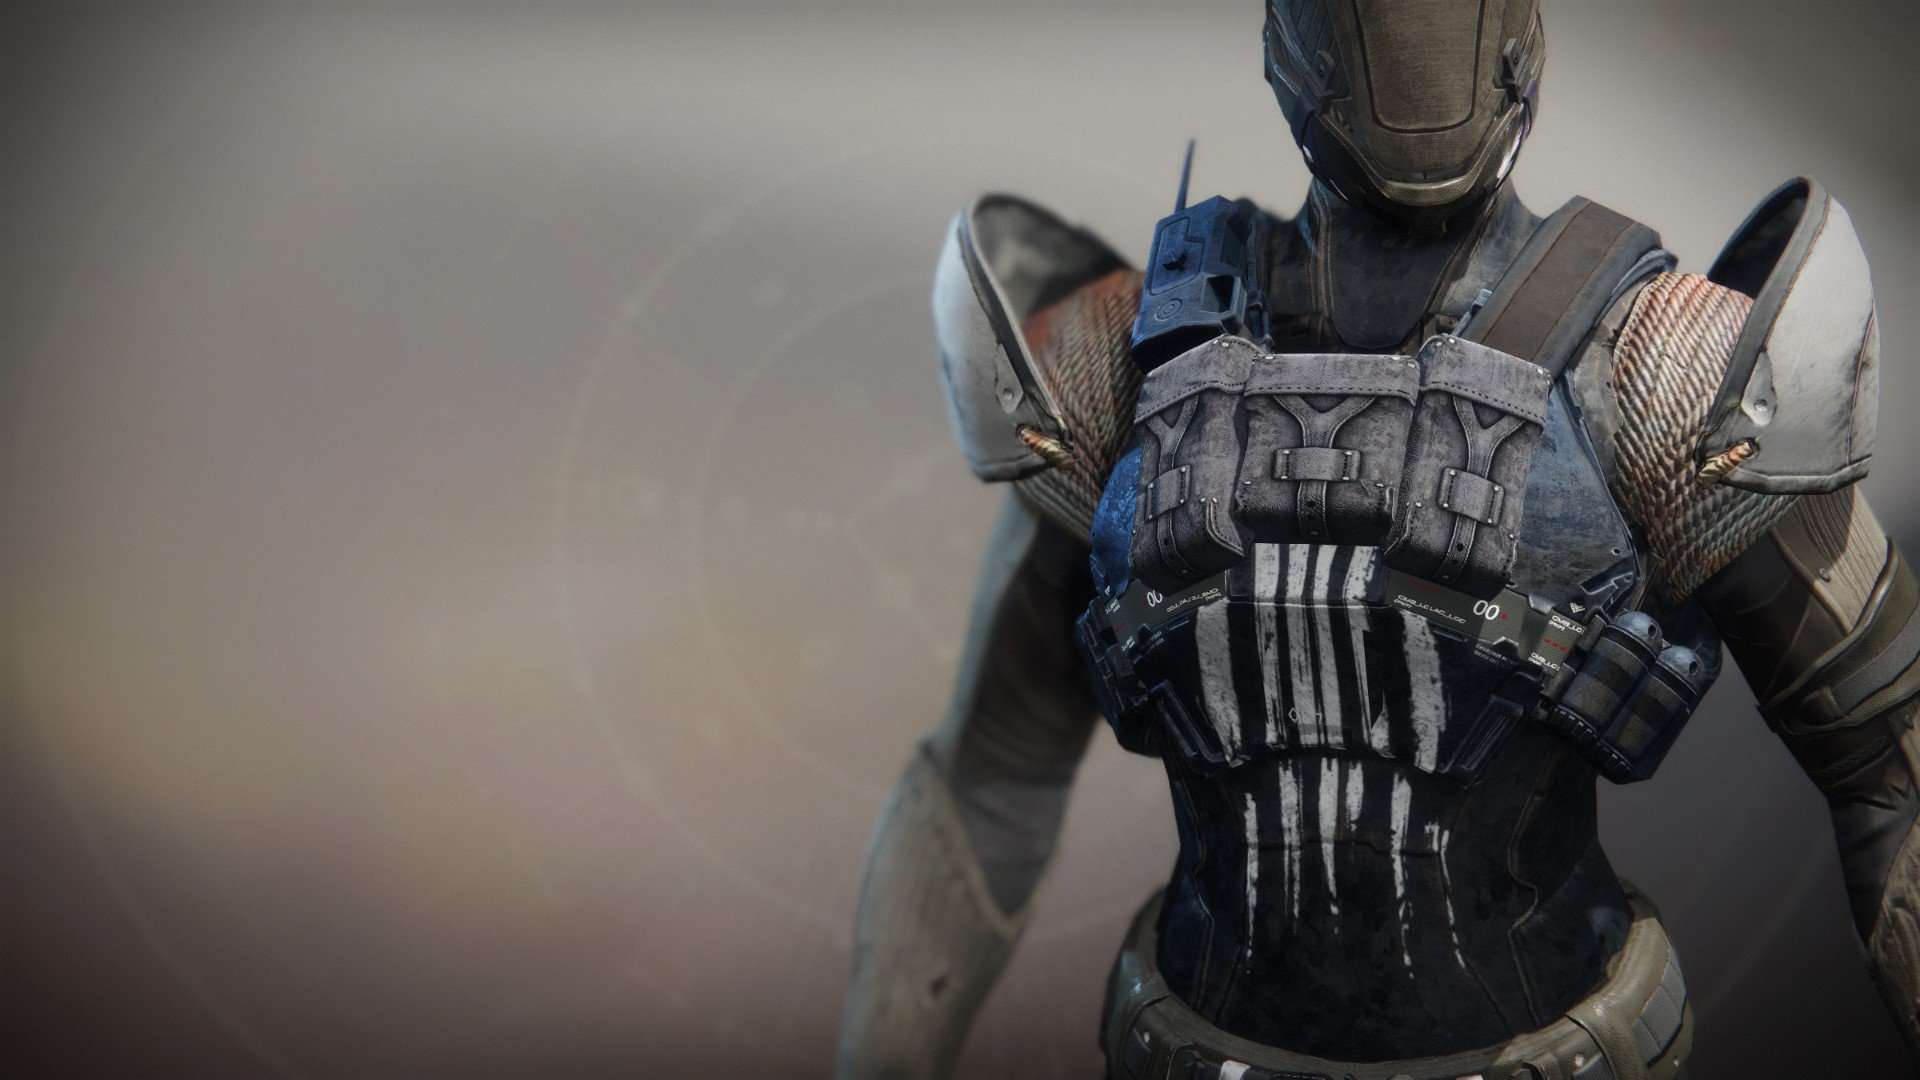 An in-game render of the Extinction Orbit Ornament.